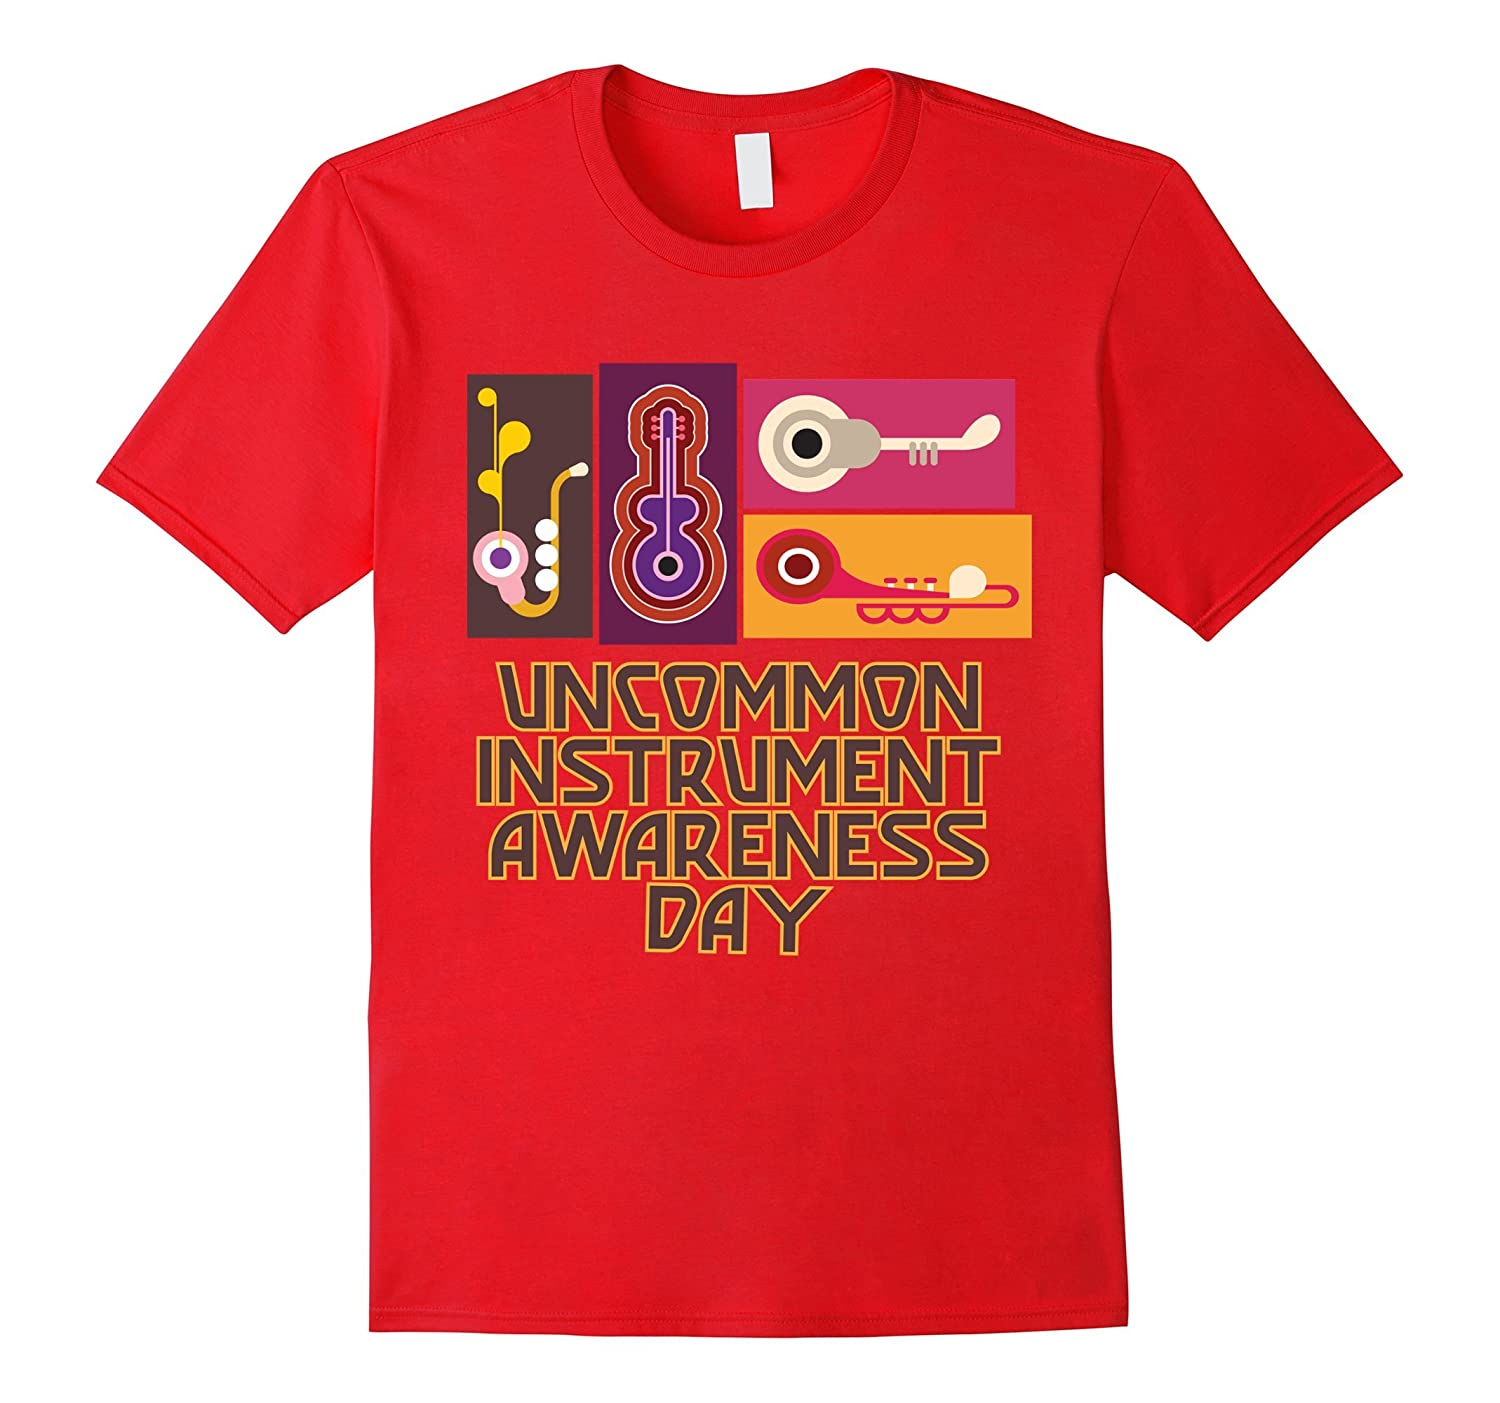 31st July - Uncommon Instrument Awareness Day Shirt-BN